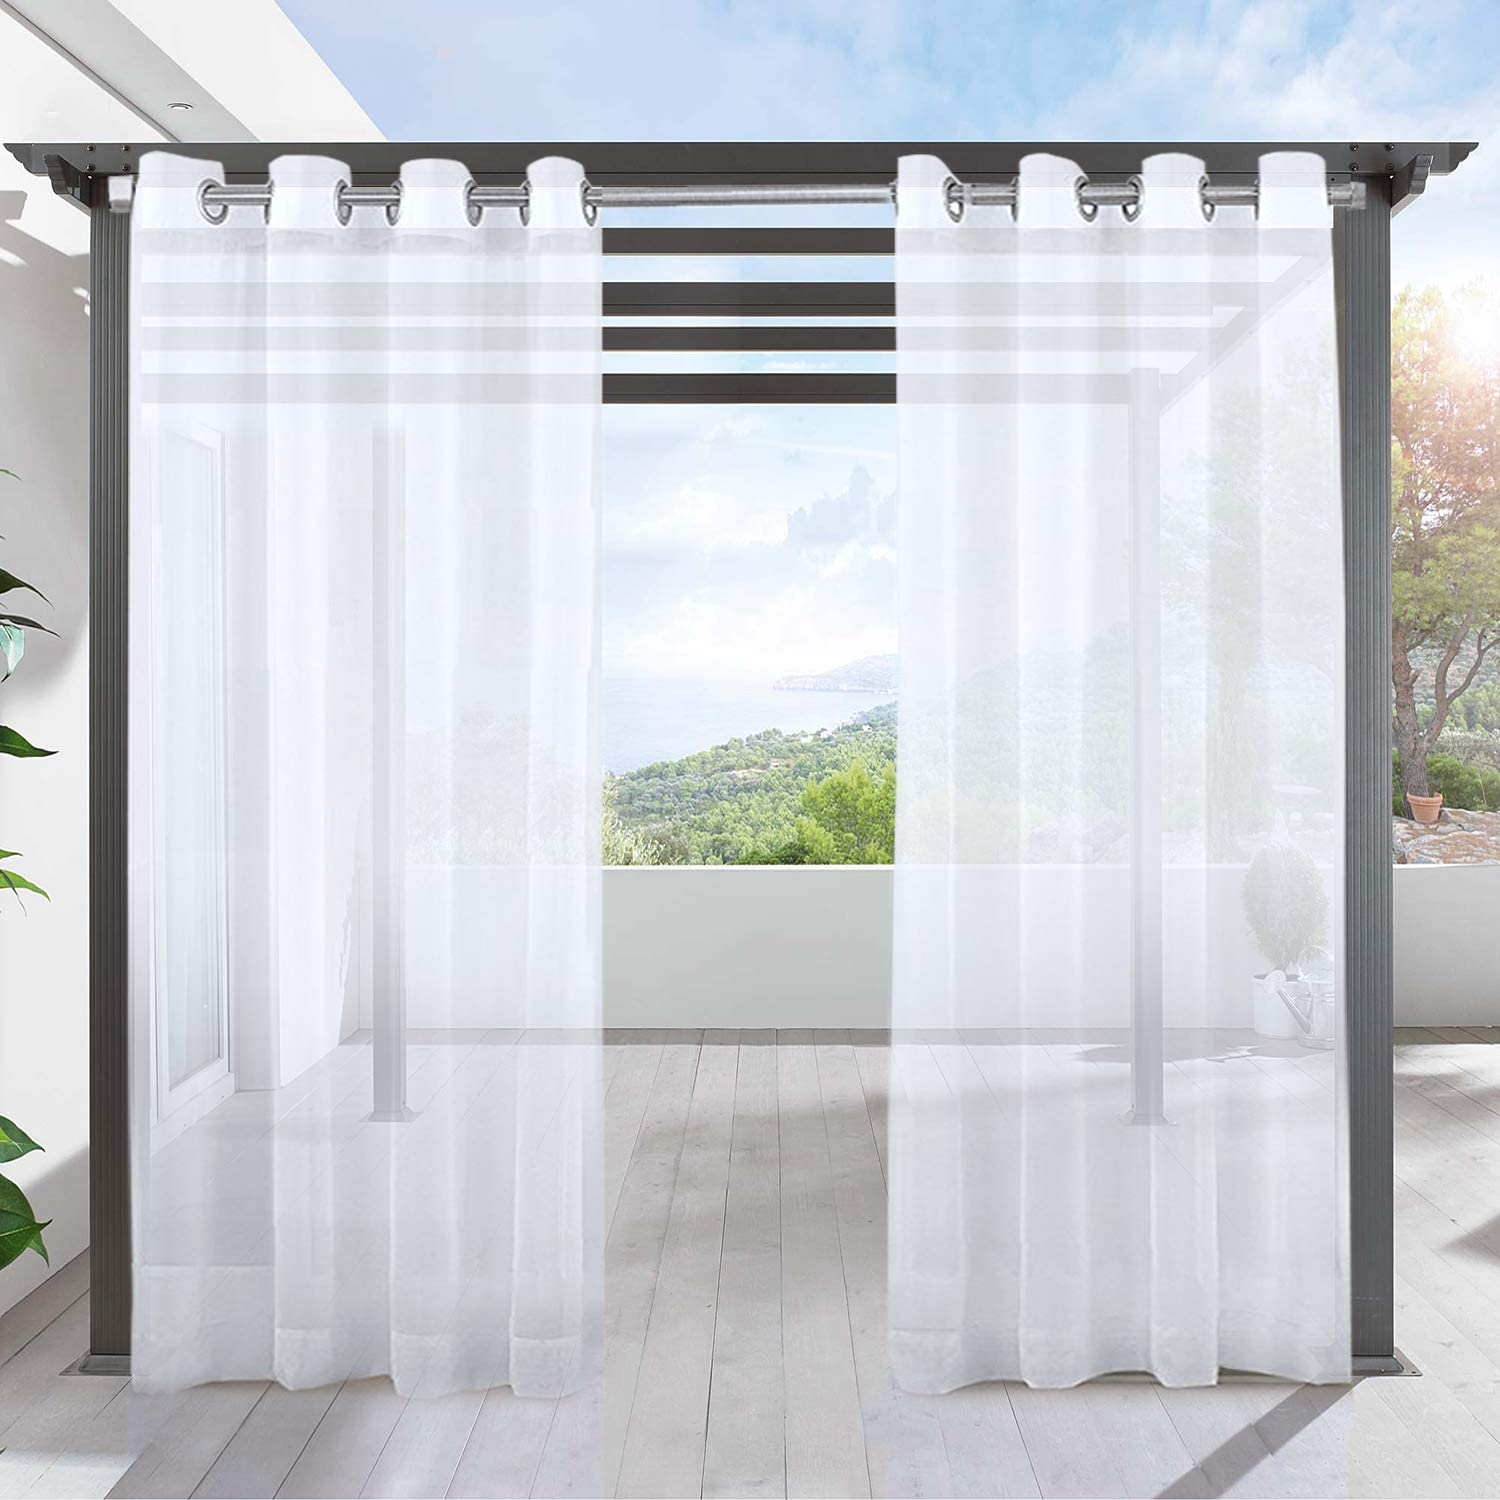 """LIFONDER Sheer Outdoor Curtain Panels - Ring Top White Waterproof Patio Curtains Canopy Drapes Blinds for Privacy, Porch, Gazebo, Deck and Pergola with 1 Tieback, 54"""" W X 96"""" L, 1 Piece W54"""" X L96""""-1 Pc White-grommet"""